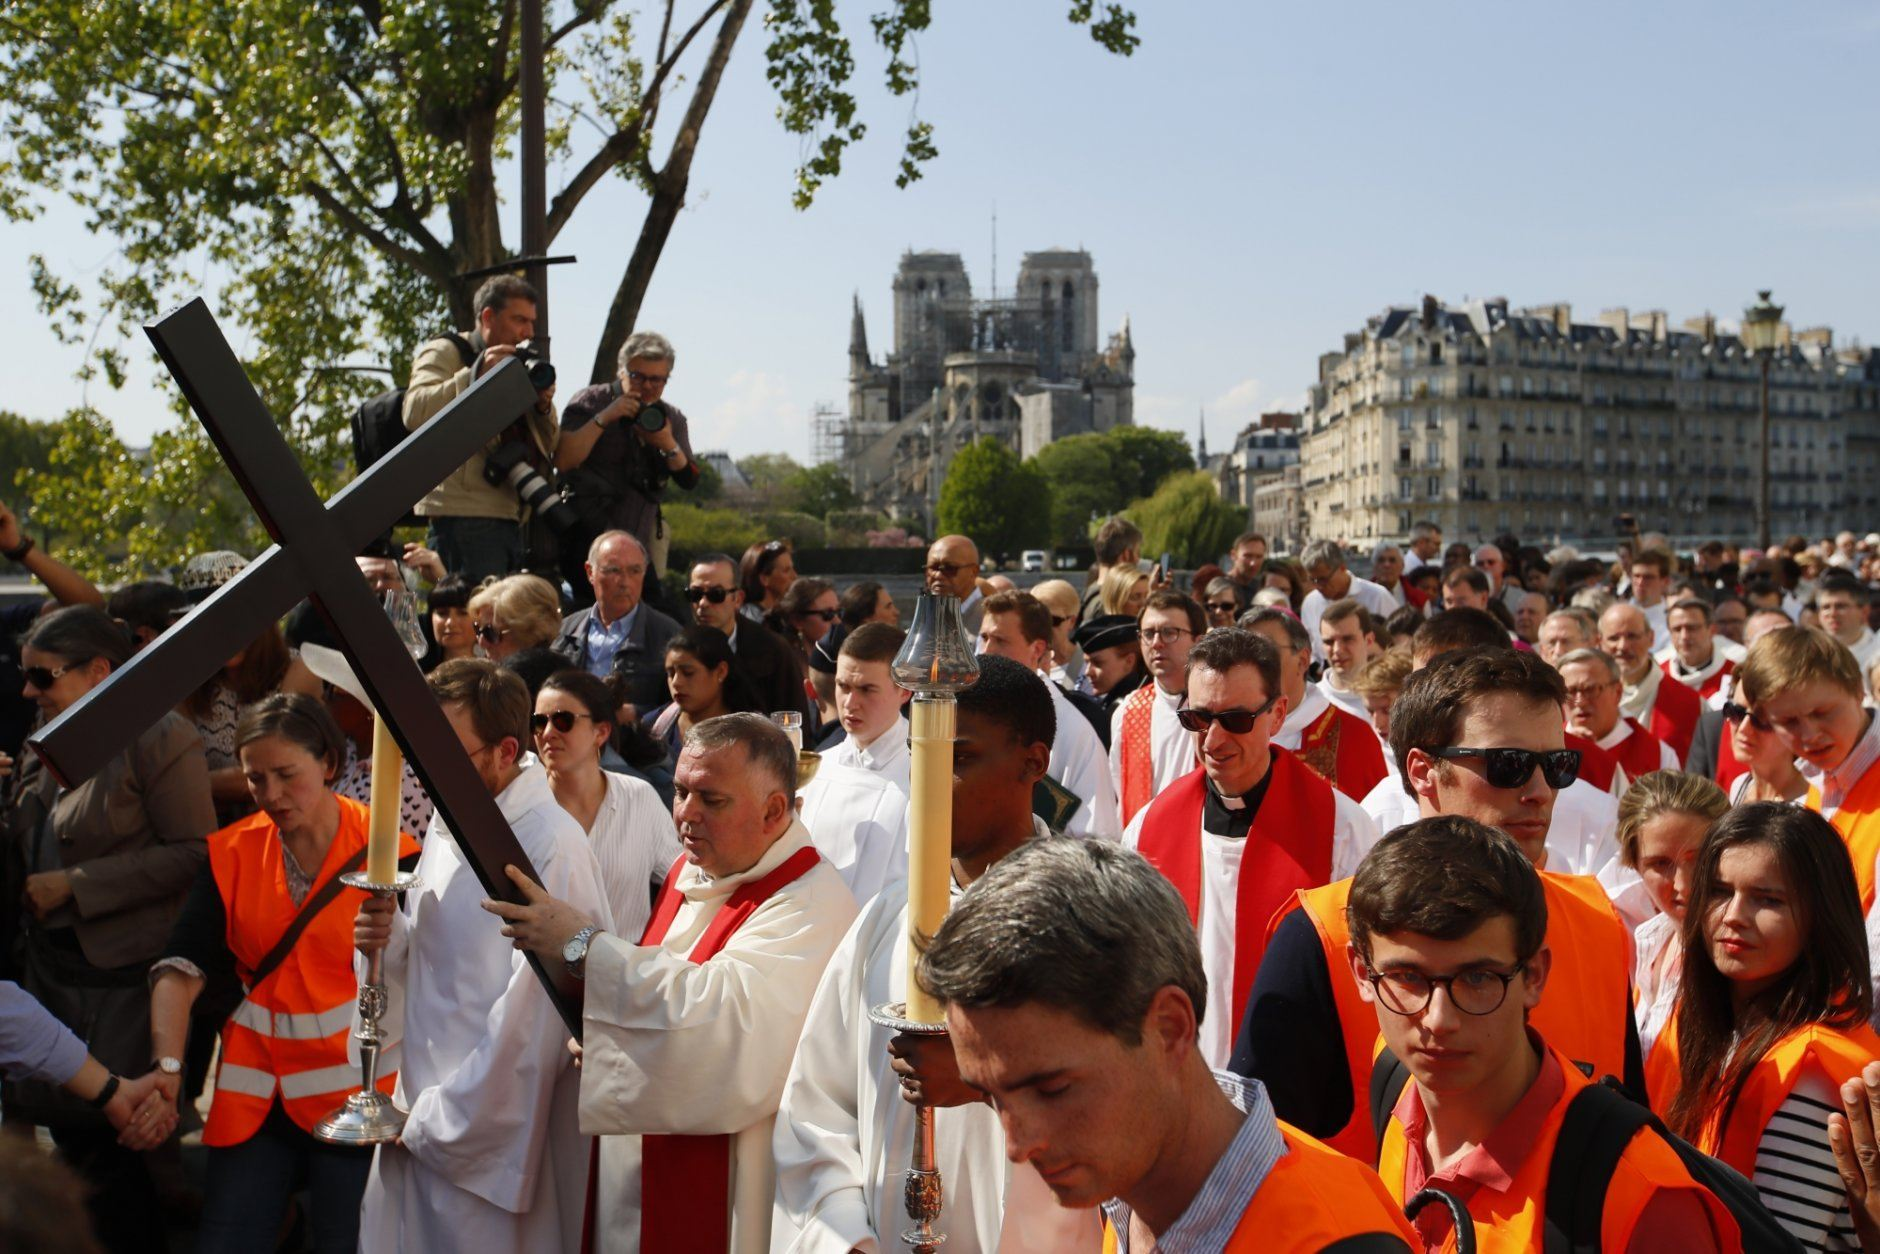 With Notre Dame cathedral in background, religious officials carry the cross during the Good Friday procession, Friday, April 19, 2019 in Paris. Top French art conservation officials say the works inside Notre Dame suffered no major damage in the fire that devastated the cathedral, and the pieces have been removed from the building for their protection.(AP Photo/Francois Mori)